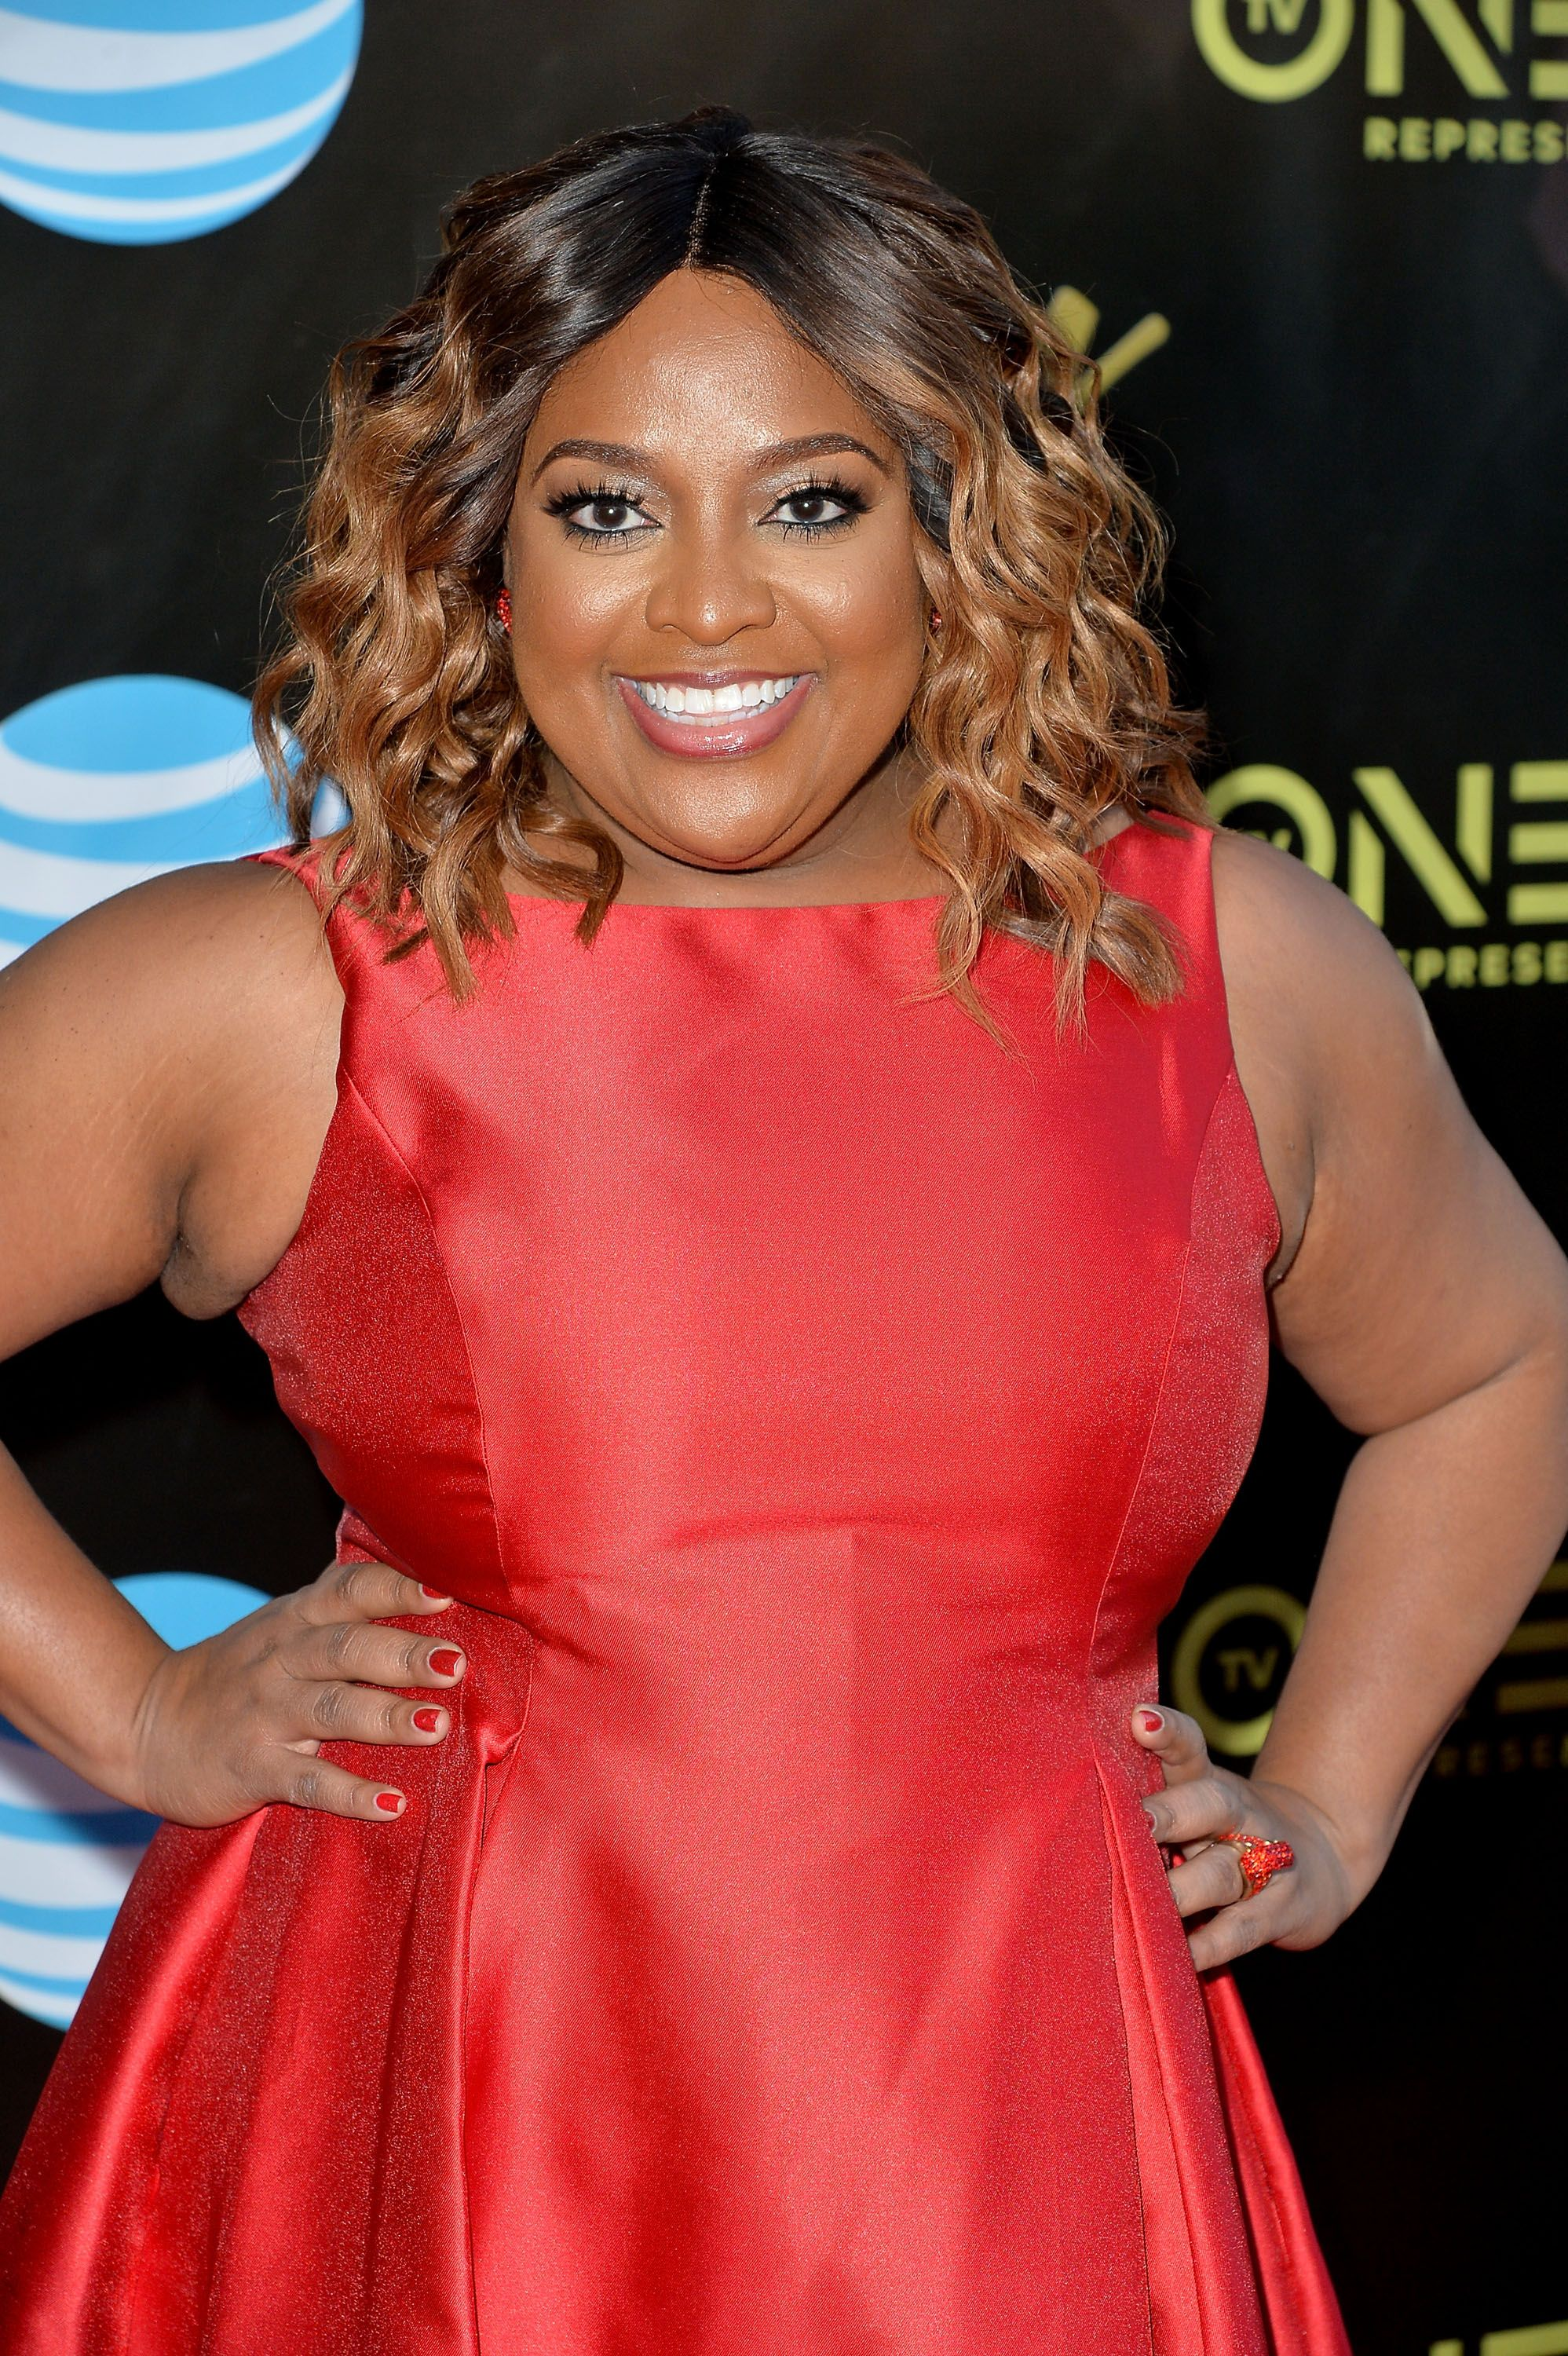 Sherri Shepherd attends the 2016 Stellar Gospel Awards at the Orleans Arena on February 20, 2016 in Las Vegas, Nevada | Photo: Getty Images